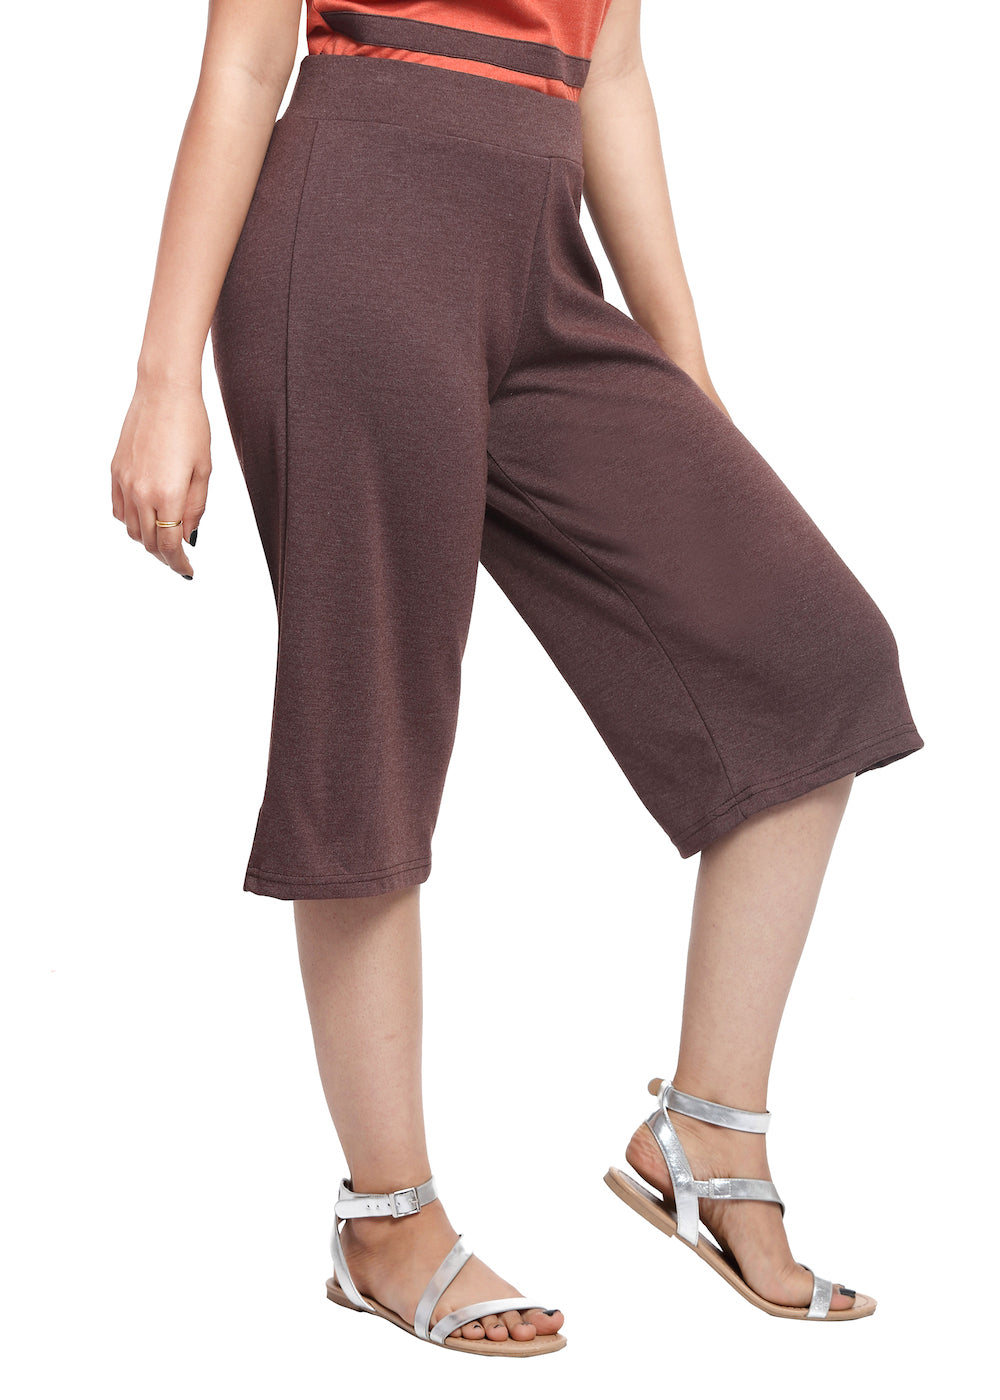 Brown Knit Culottes - GENZEE